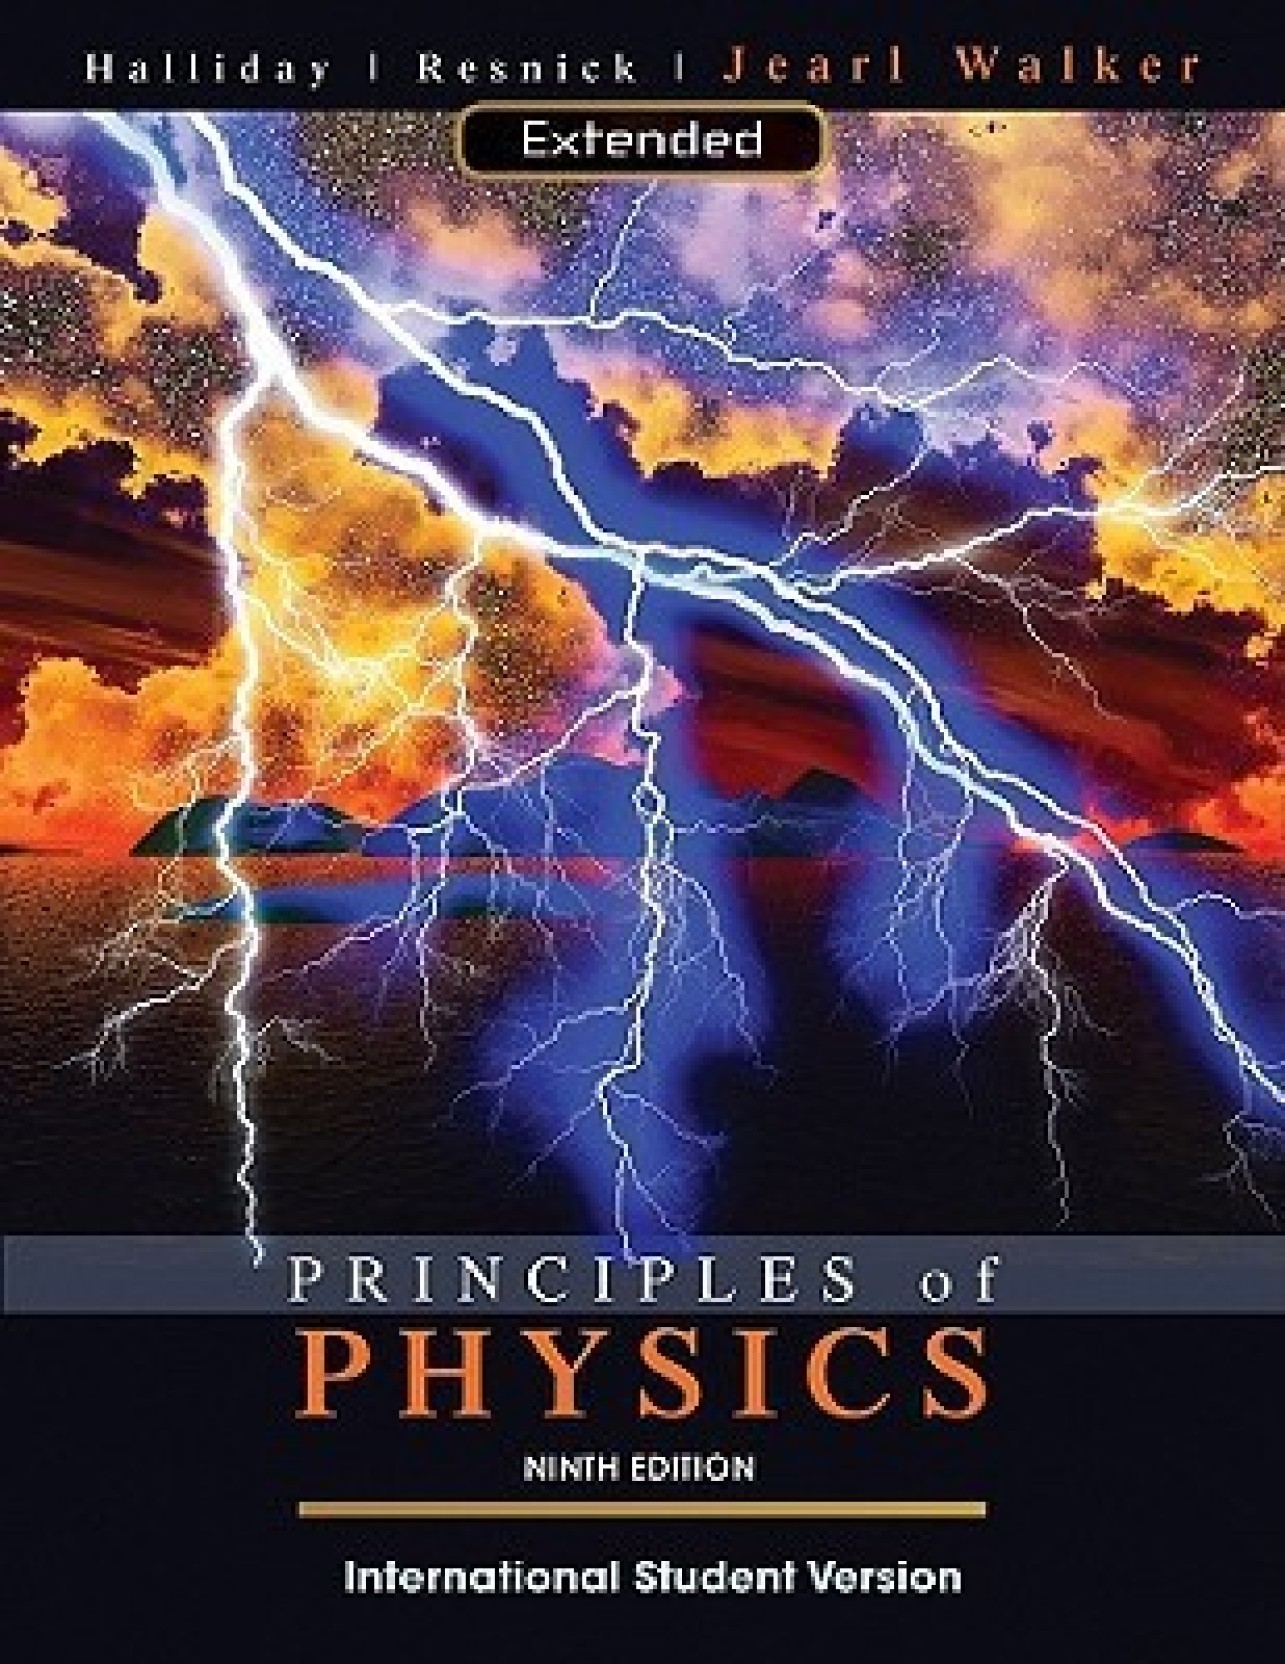 principles of physics 10th edition international student version solution manual